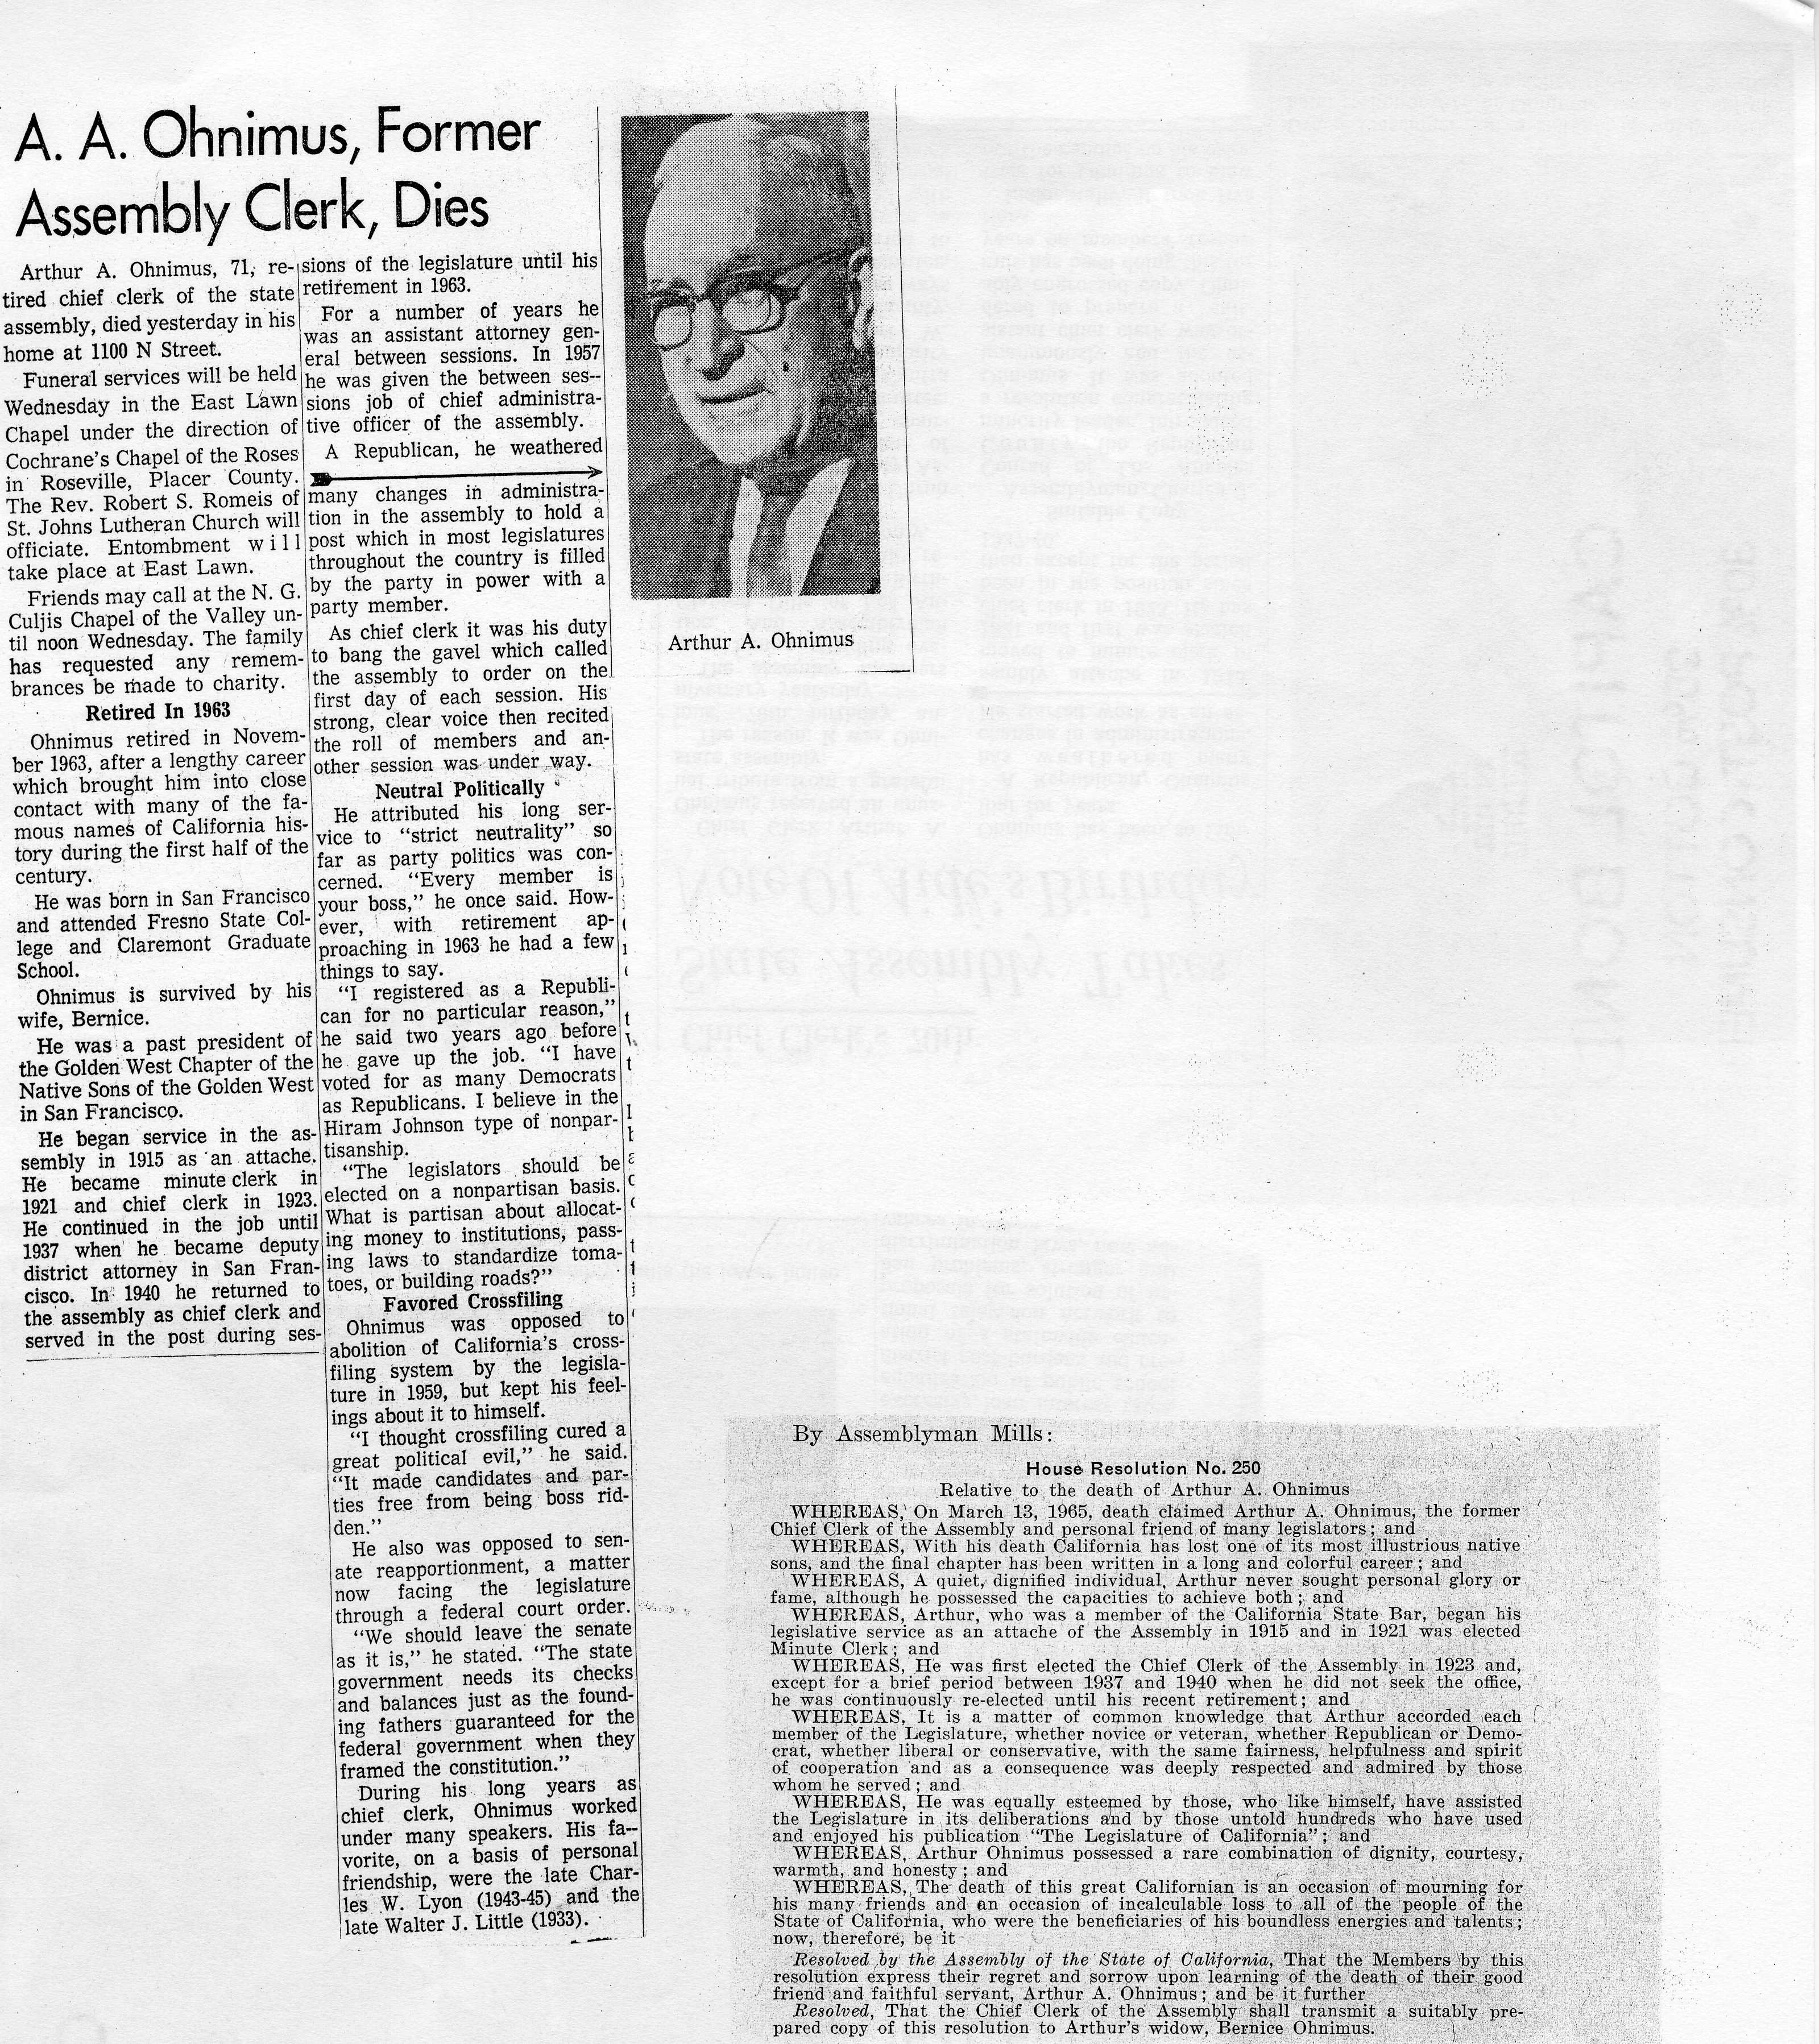 1900-39 Diplomatic 1927 Headline Display Newspaper Ruth Snyder To Die In Electric Chair For Murder Utmost In Convenience